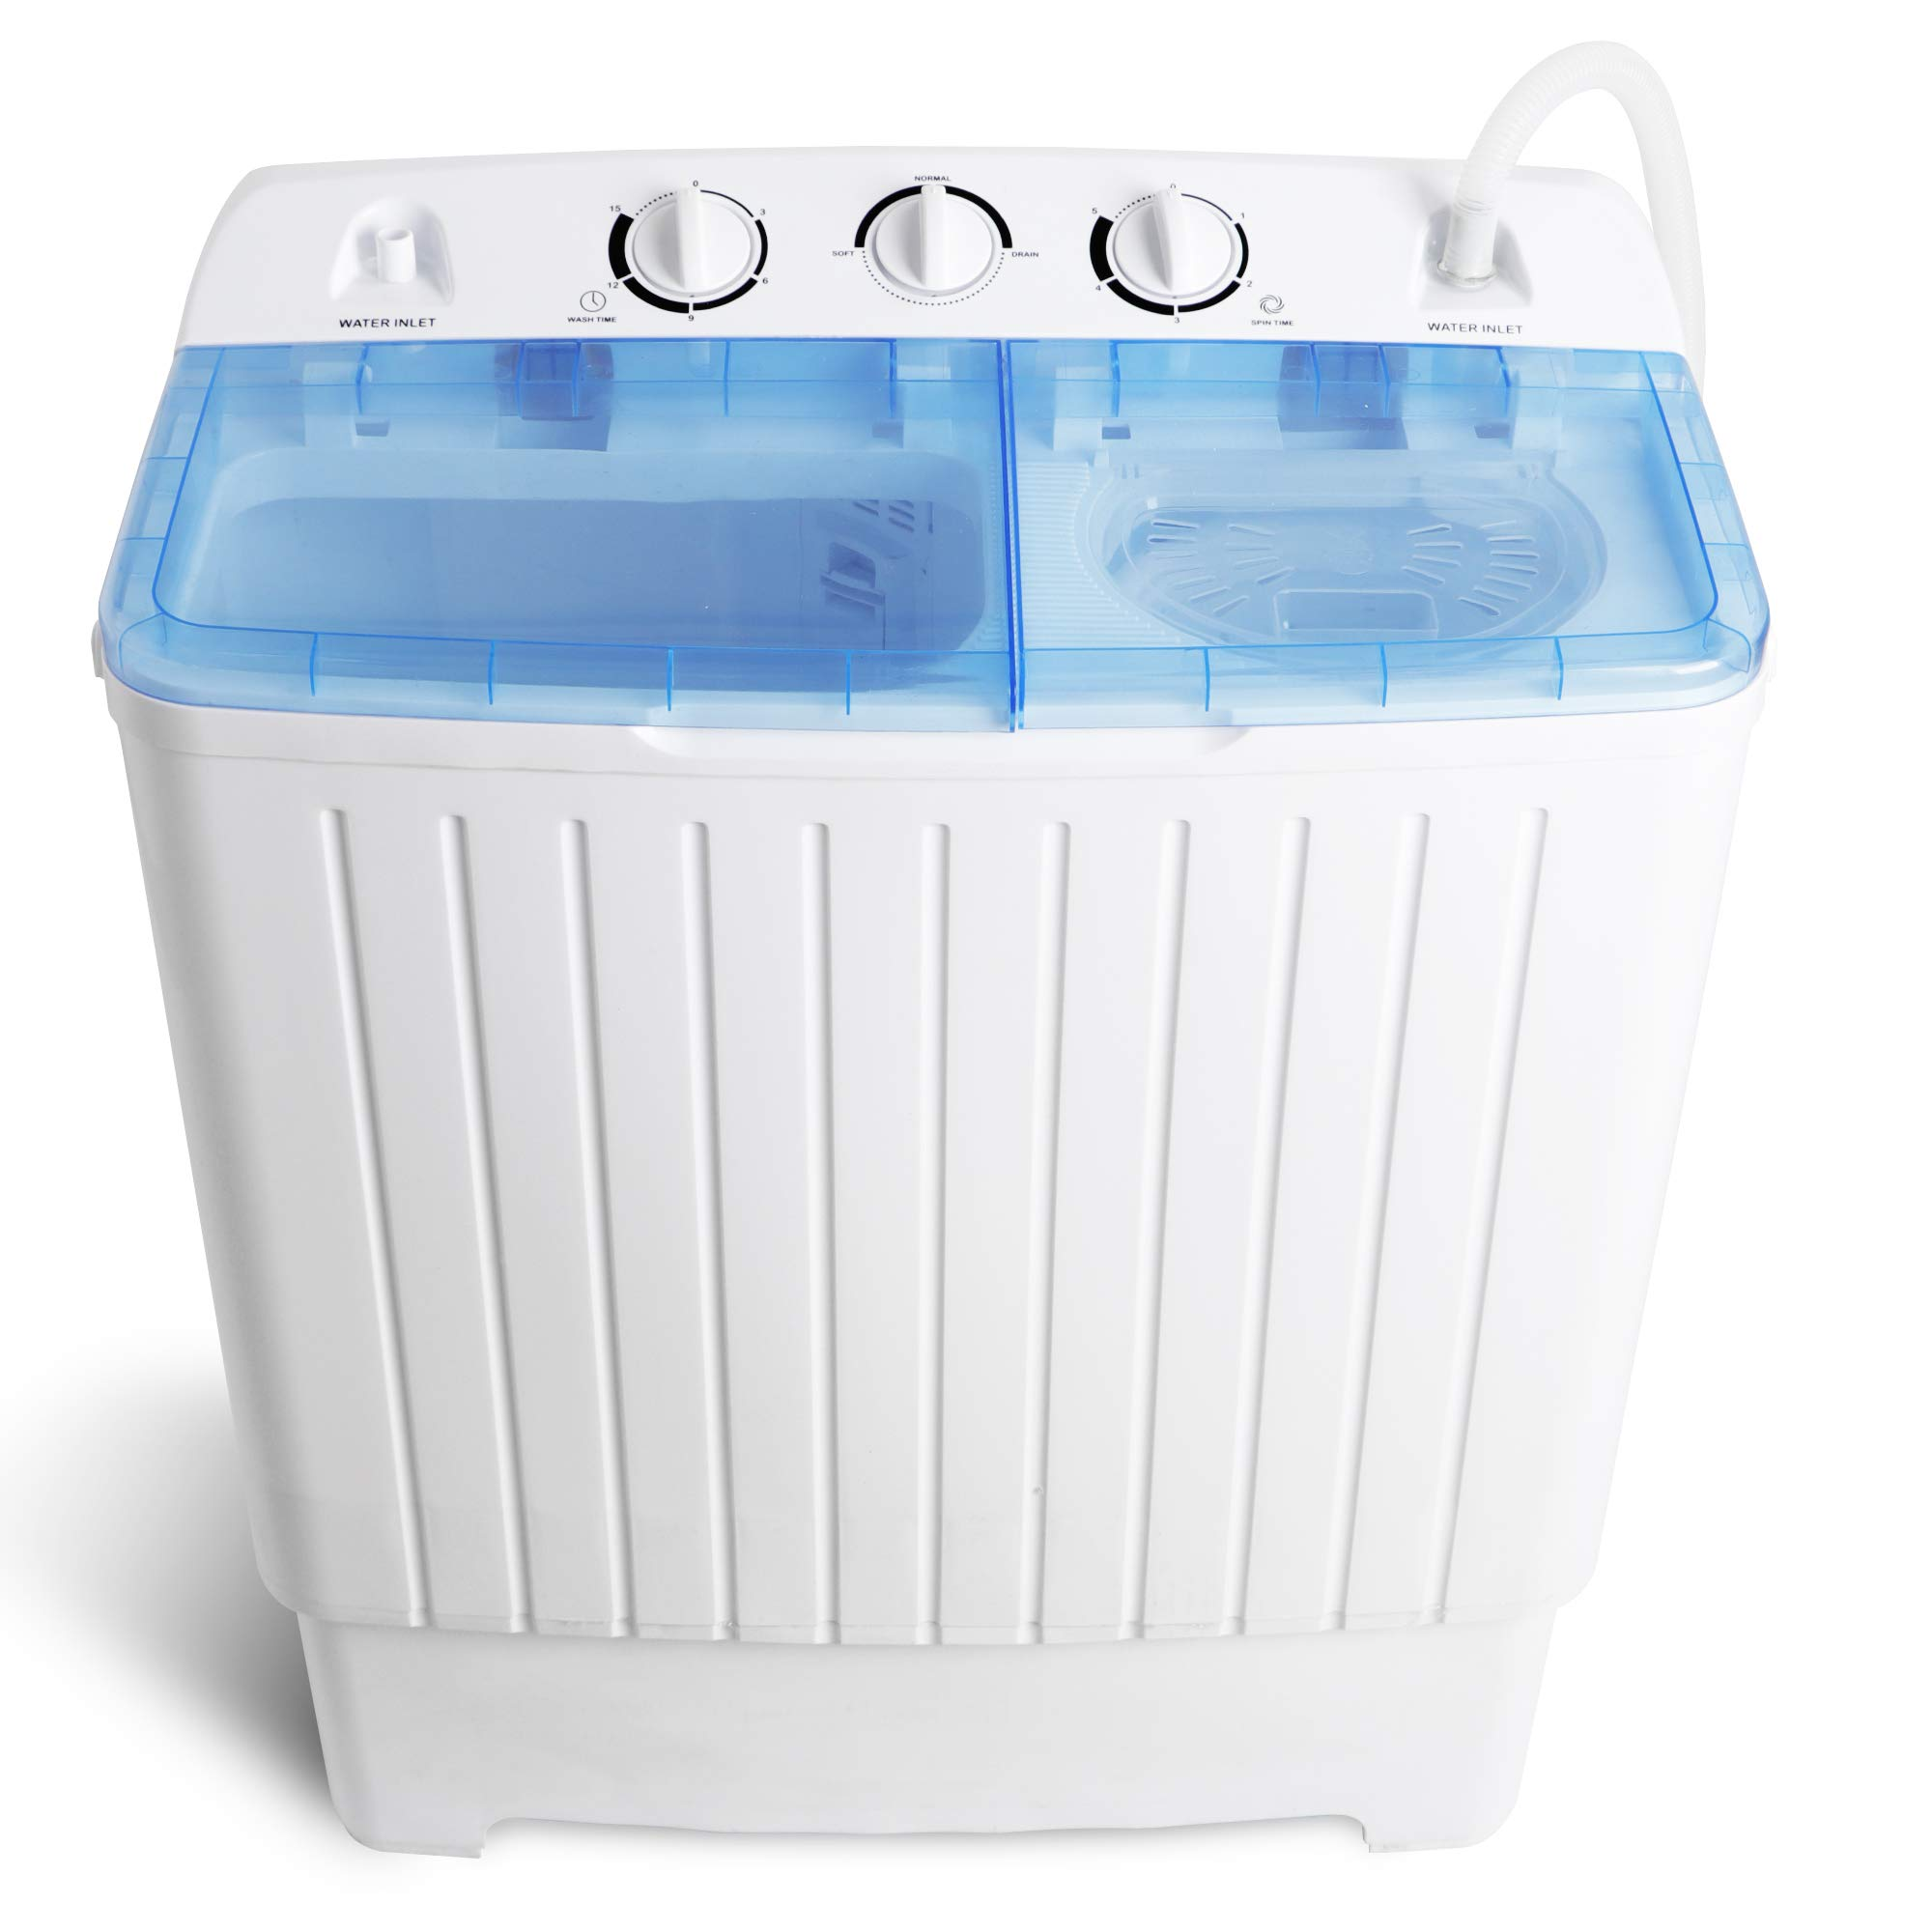 SUPER DEAL Portable Washer Mini Twin Tub Washing Machine 17.6 lbs w/78.8'' Inlet Hose, Gravity Drain Pump, For Camping, Apartments, Dorms, College Rooms, RV's, Delicates and more by Super Dea